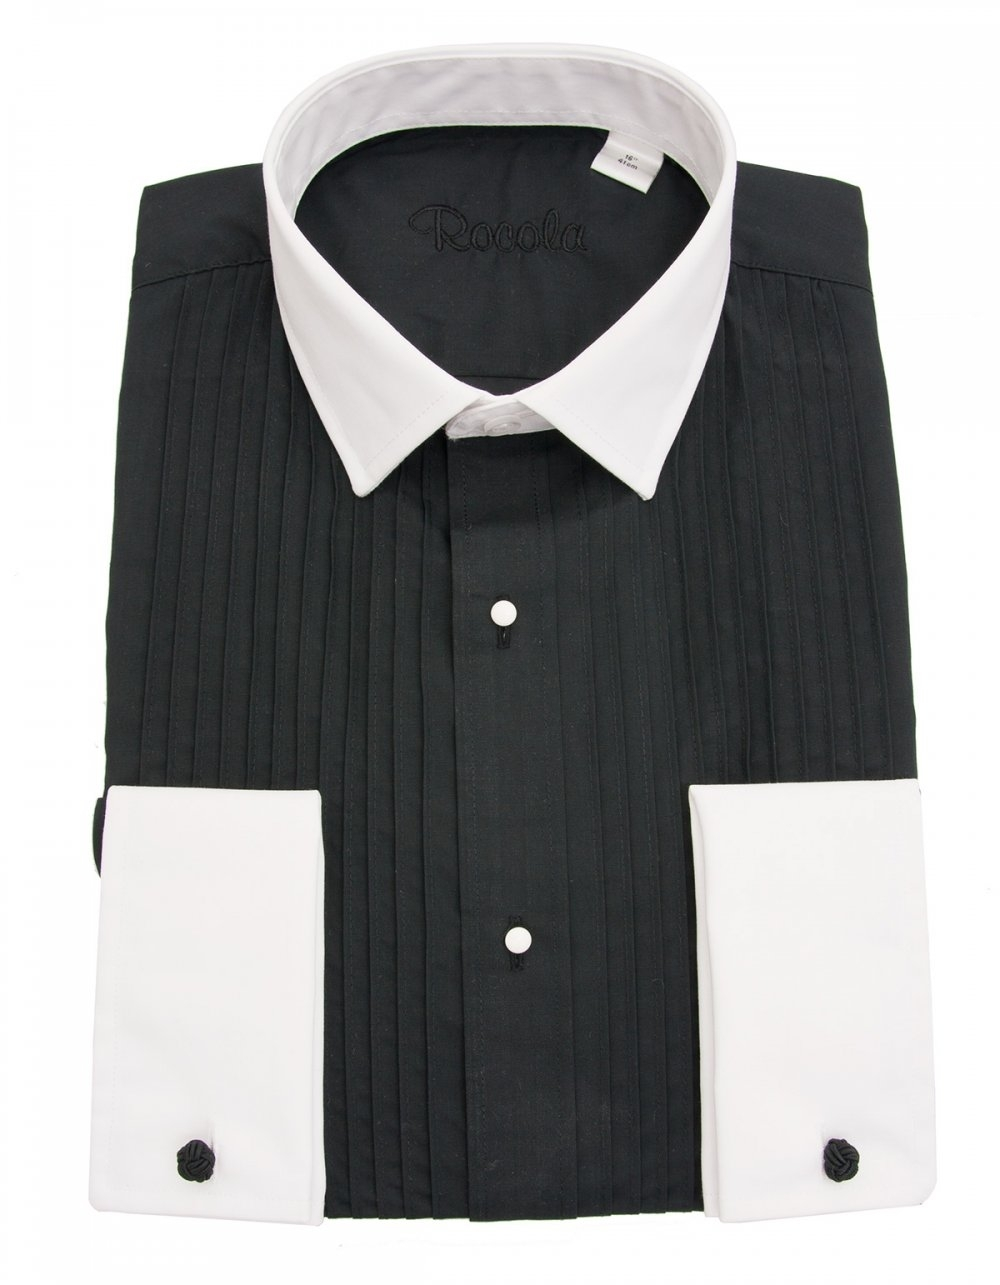 rocola black pleat dress shirt with white contrast collar